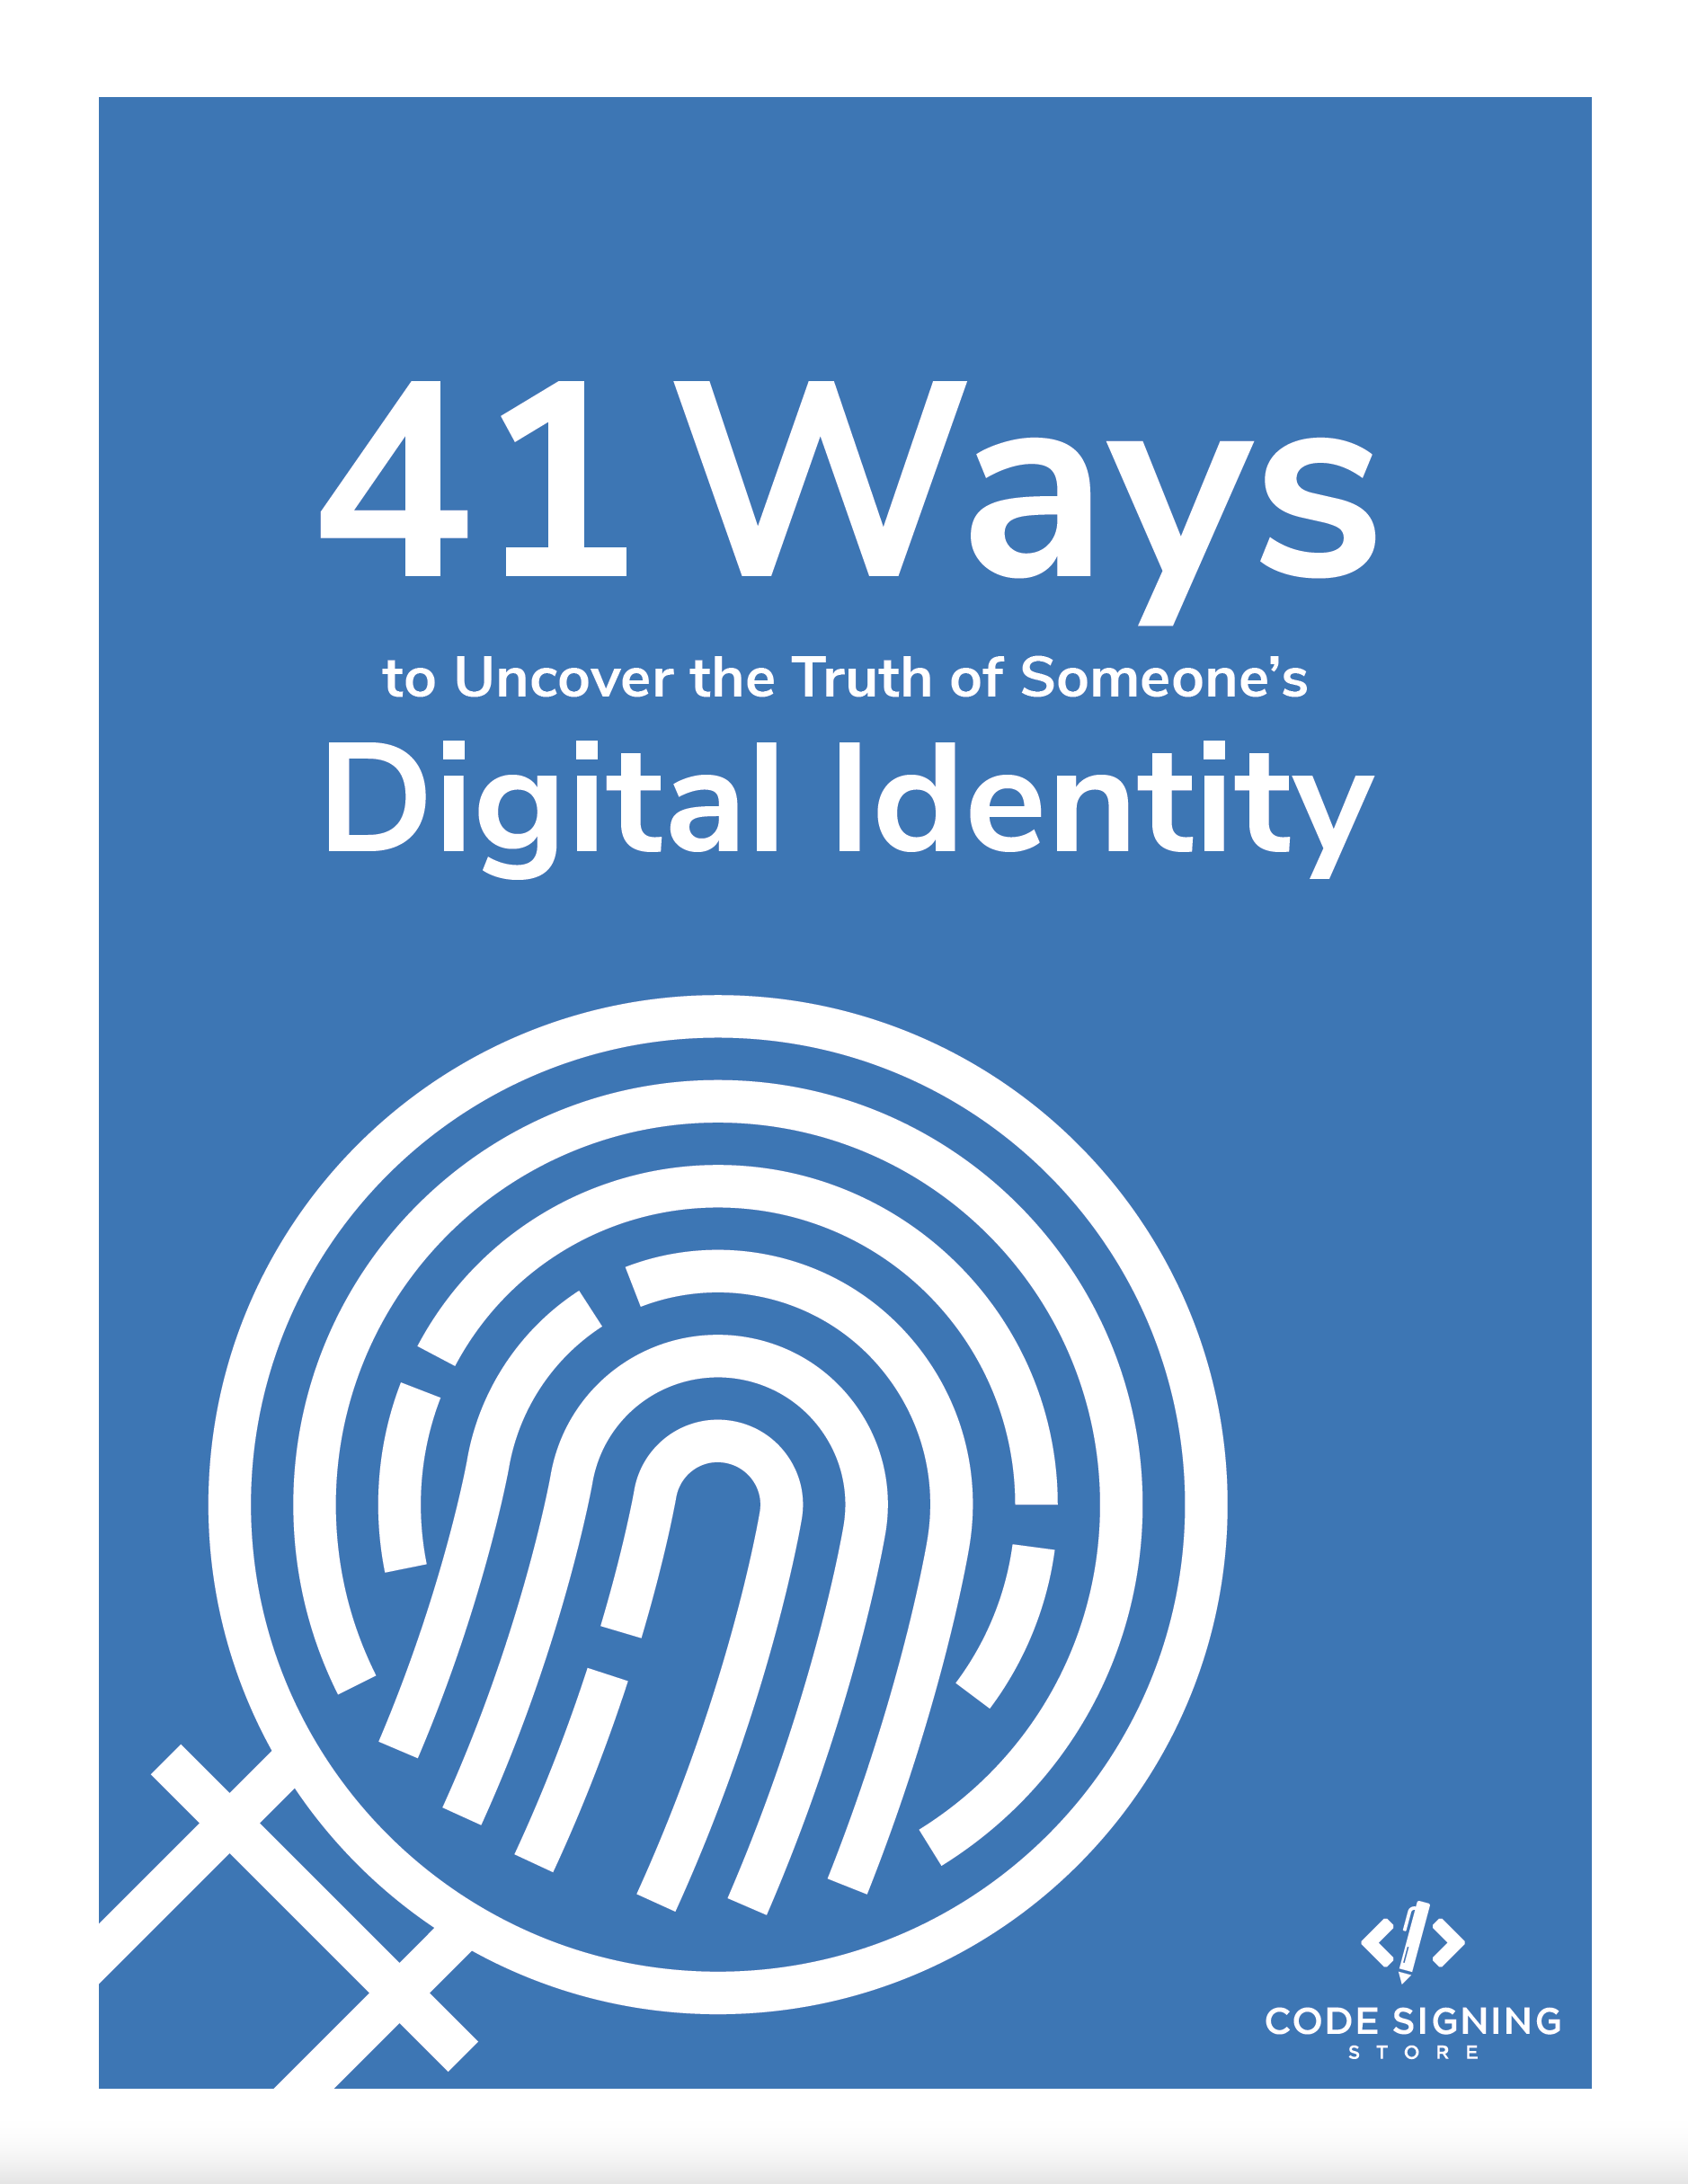 41 Ways to Uncover the Truth of Someone's Digital Identity Printout